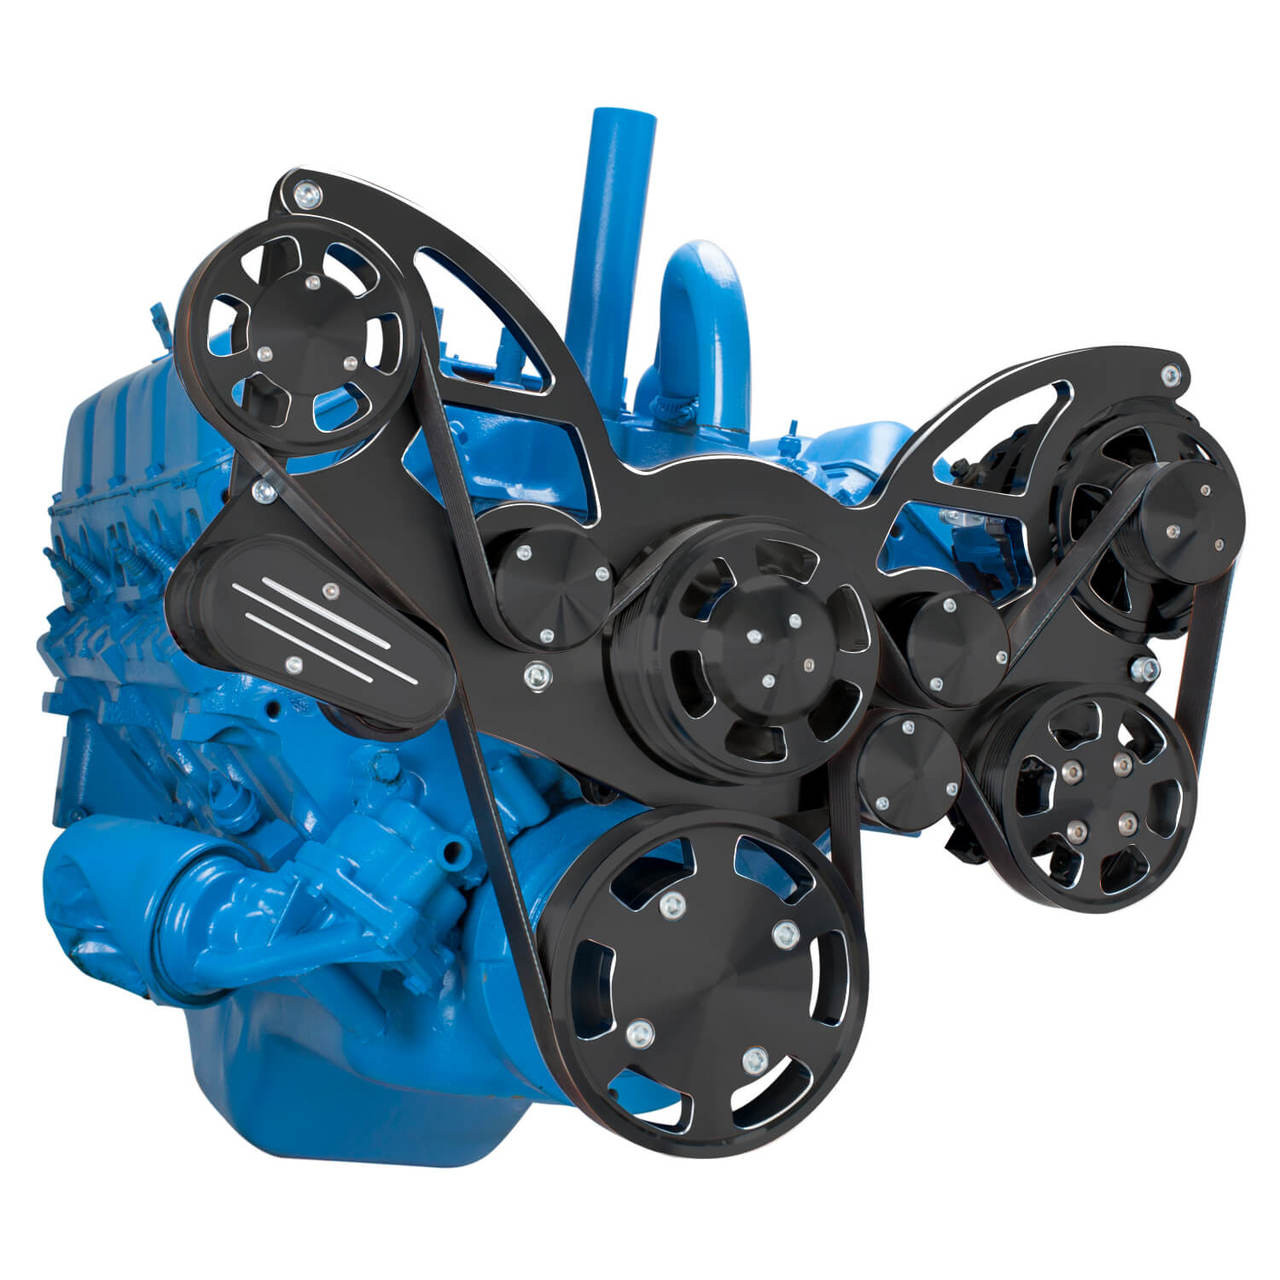 stealth black serpentine conversion kit for amc jeep with power steering alternator [ 1280 x 1280 Pixel ]